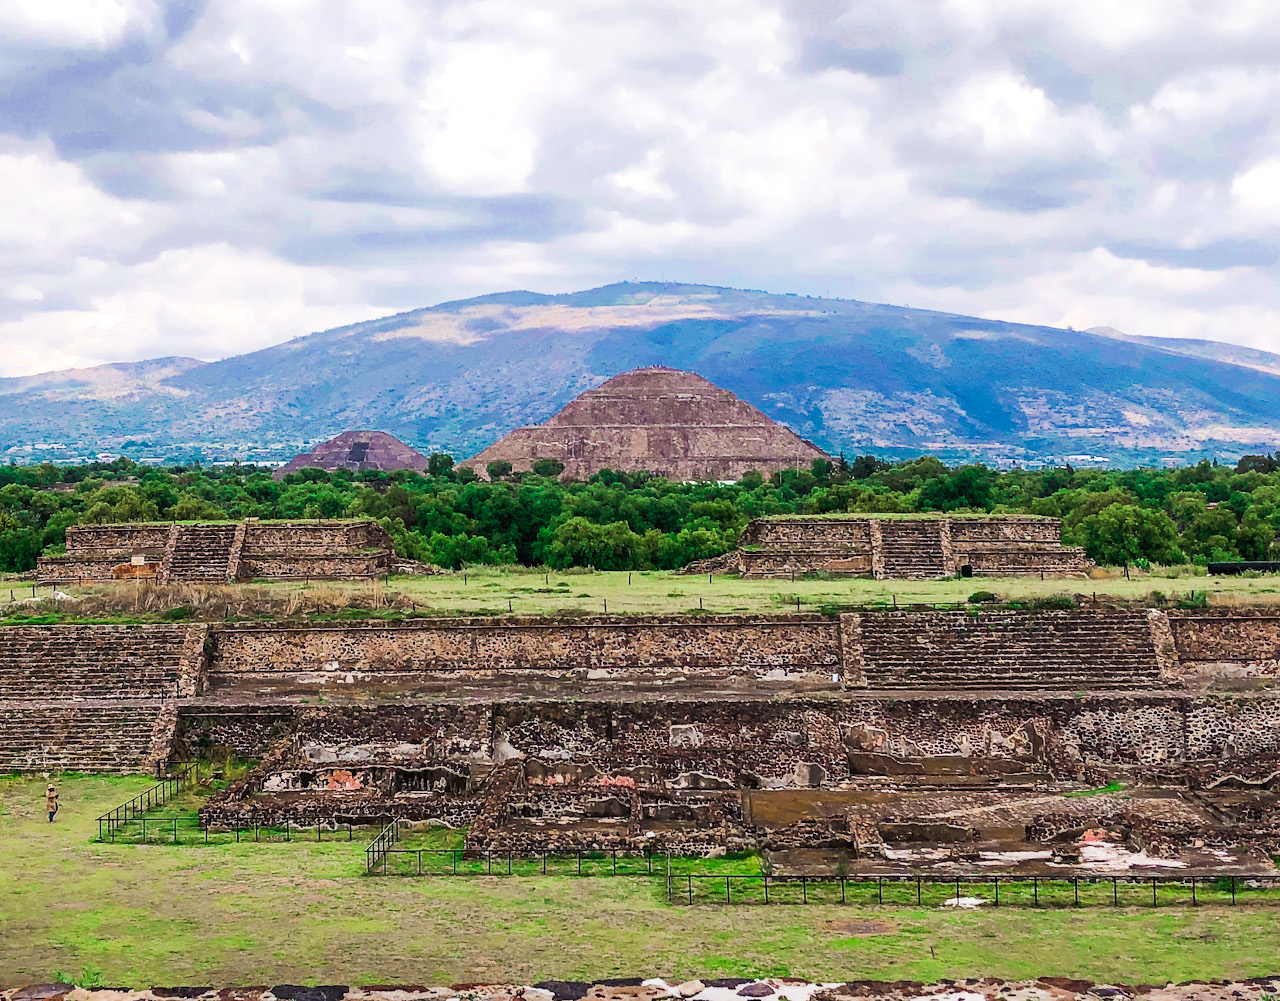 Teotihuacan is one of the best places to visit near Mexico City. Here's your comprehensive 5-day travel itinerary for Mexico City